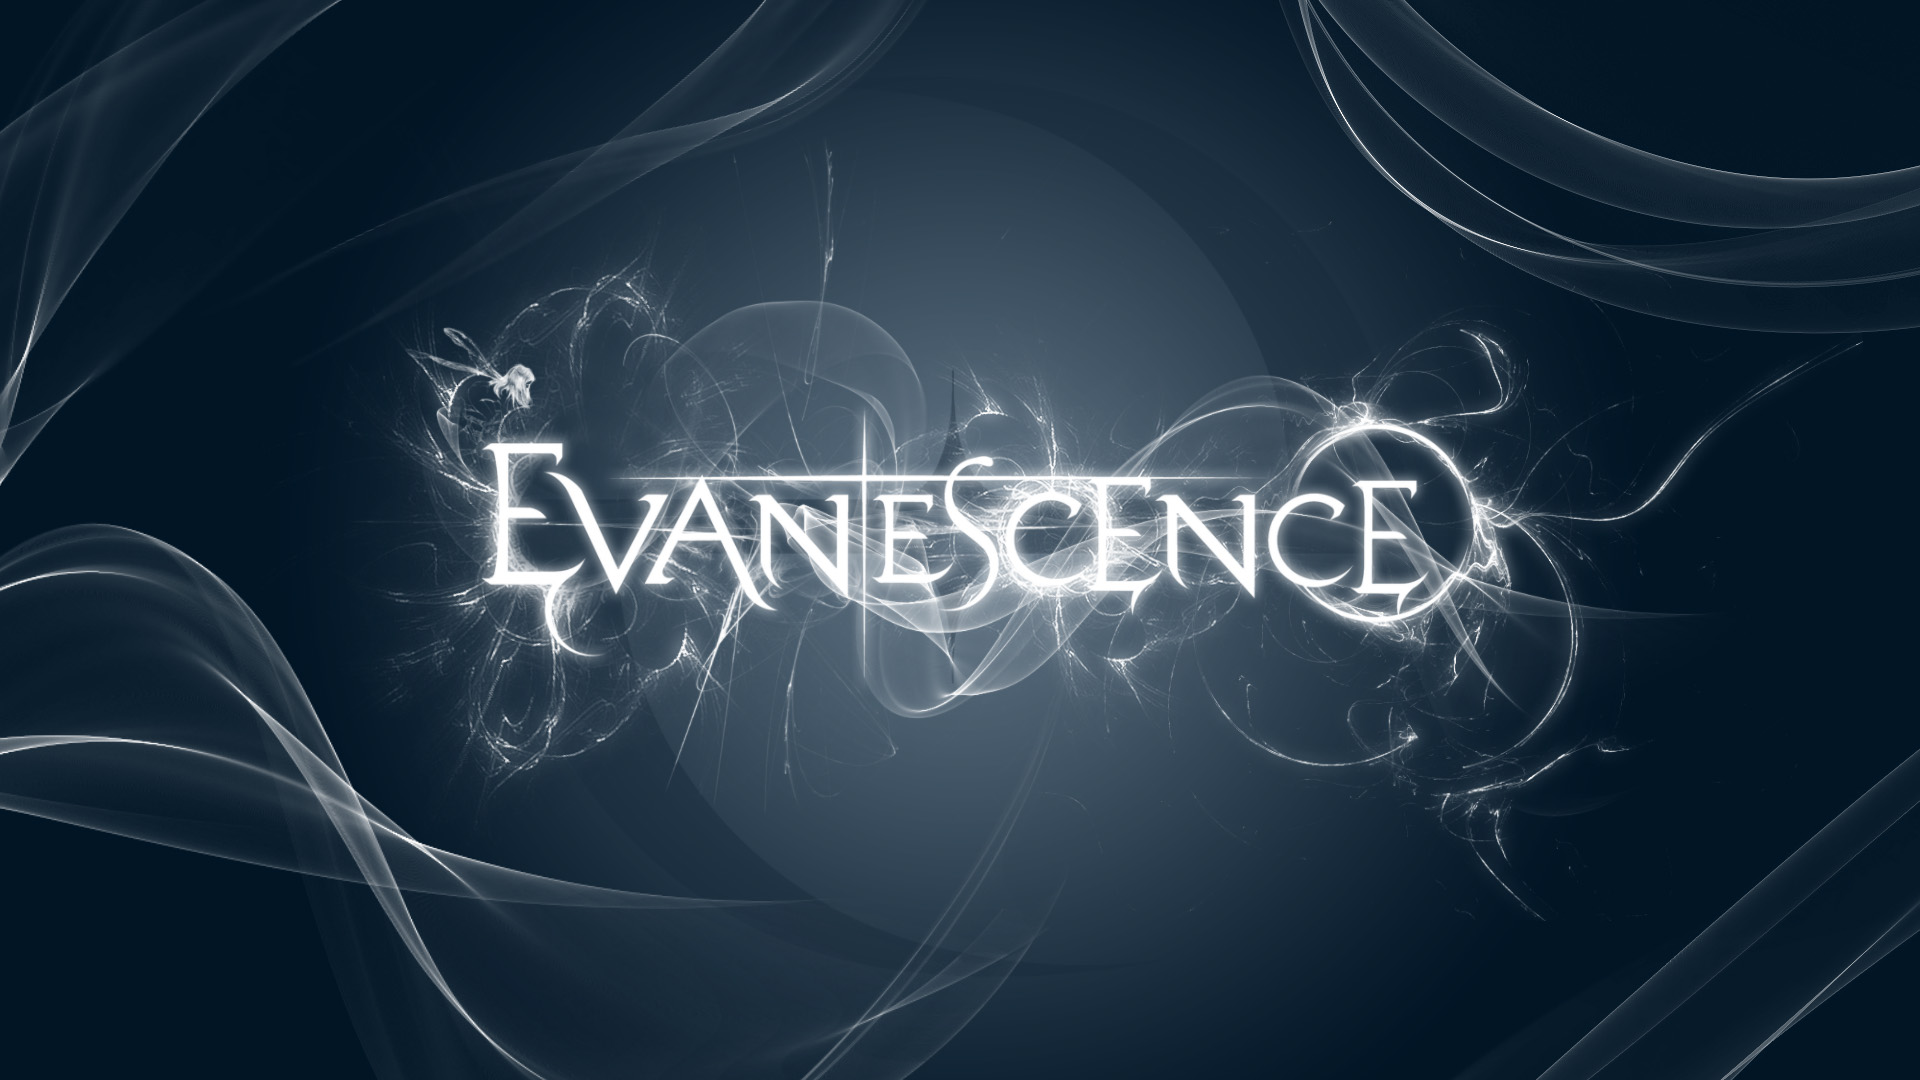 Evanescence Wallpapers Propios Full HD   Taringa 1920x1080